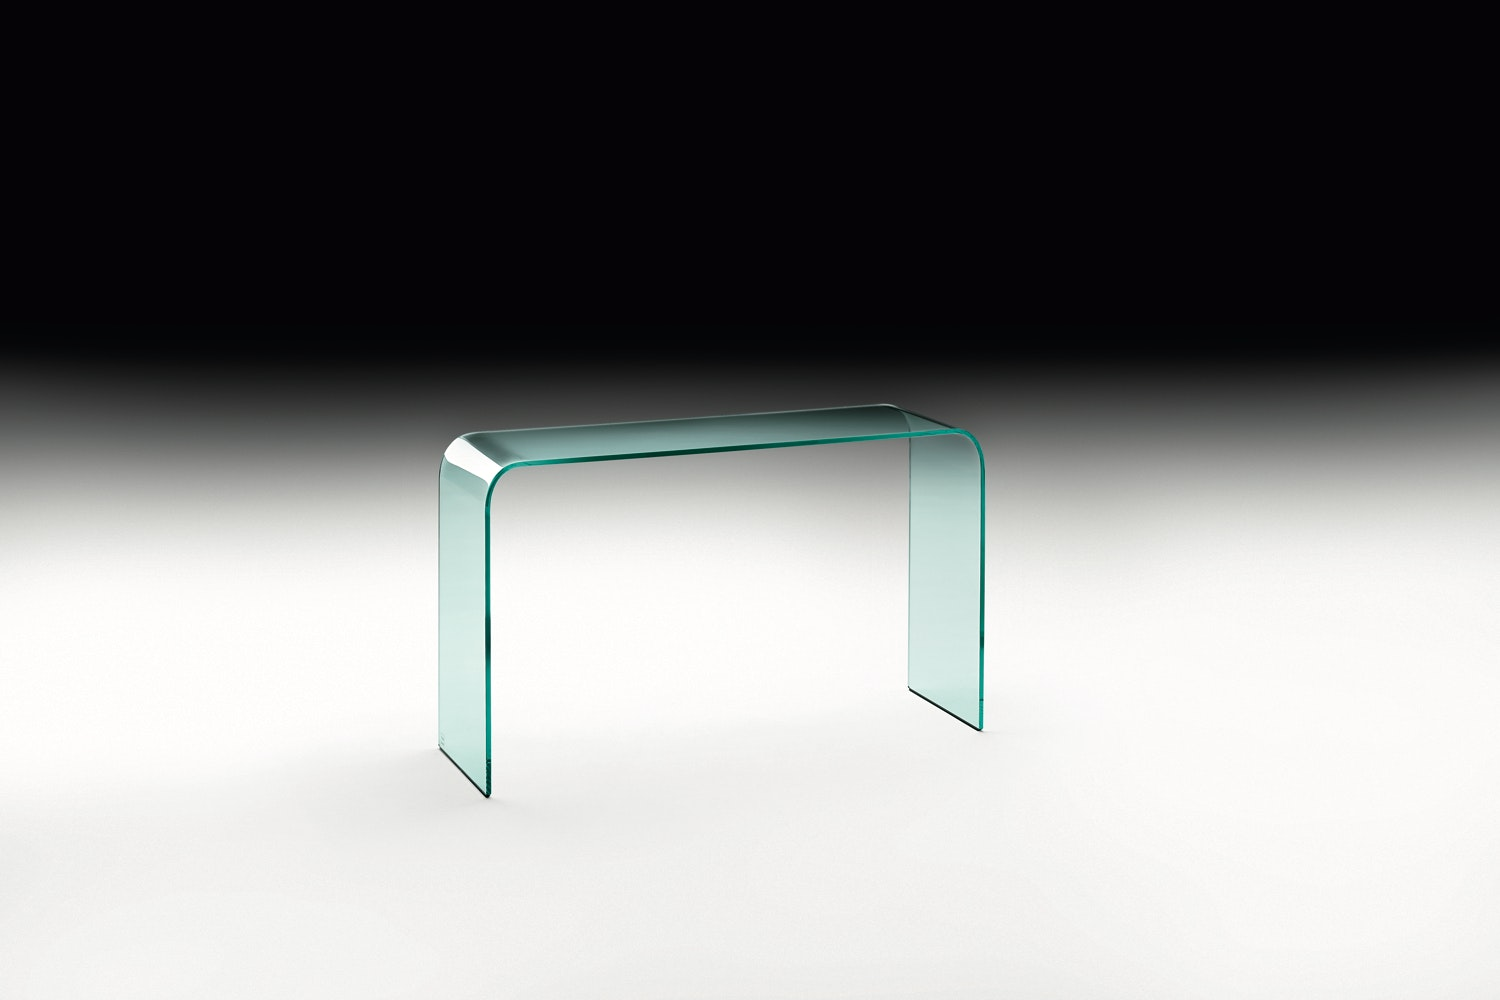 Elementare Console Table by Enrico Tonucci for Fiam Italia